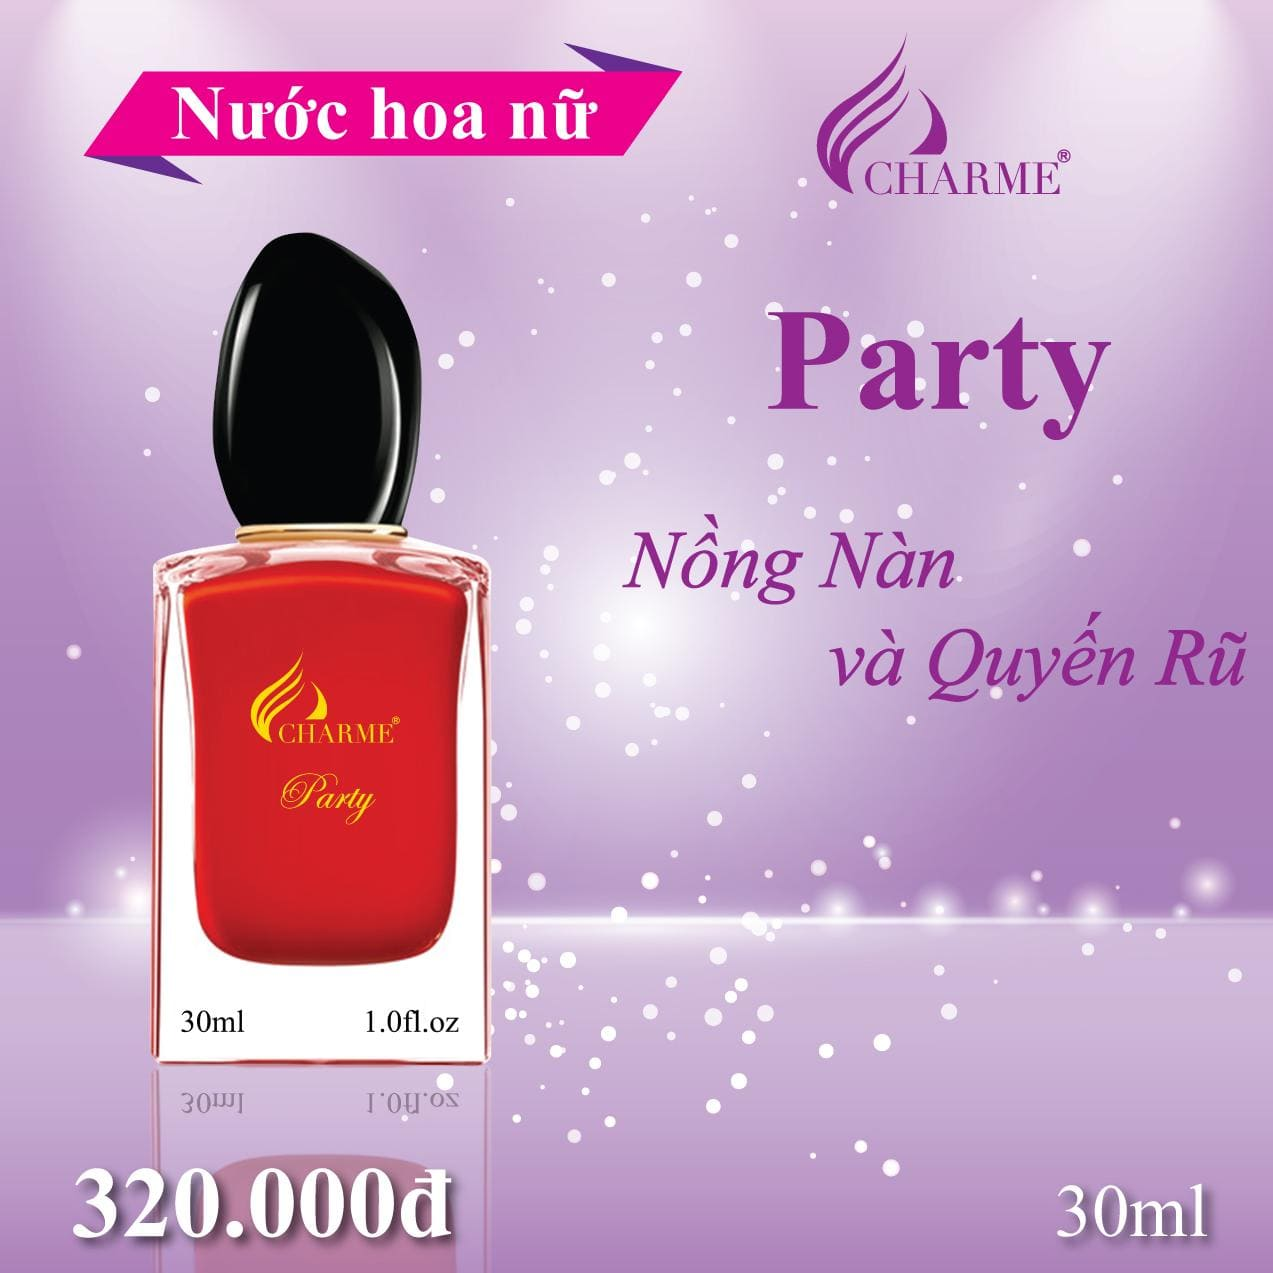 Charme Party 30ml